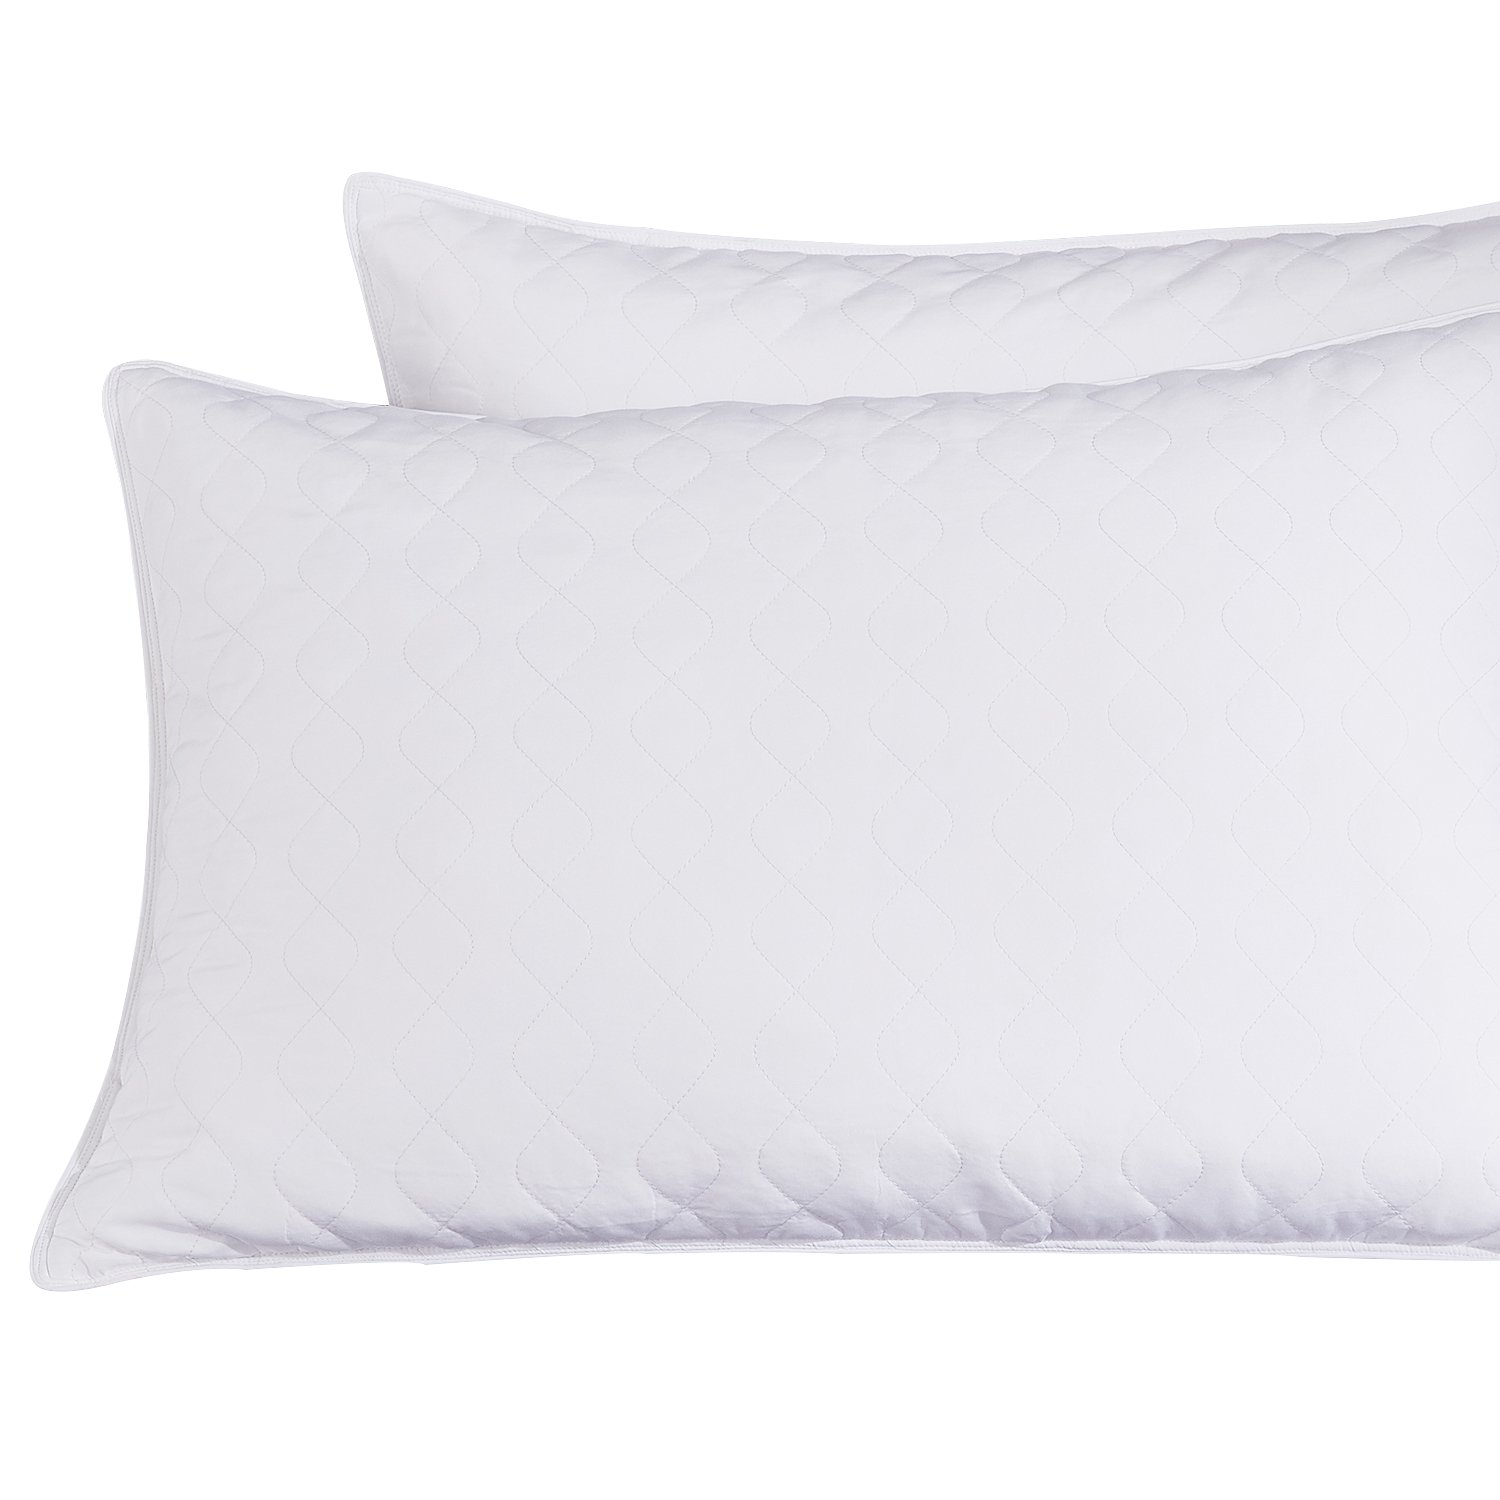 puredown Pillow Quilted Goose Feather Set of 2,White Size, King